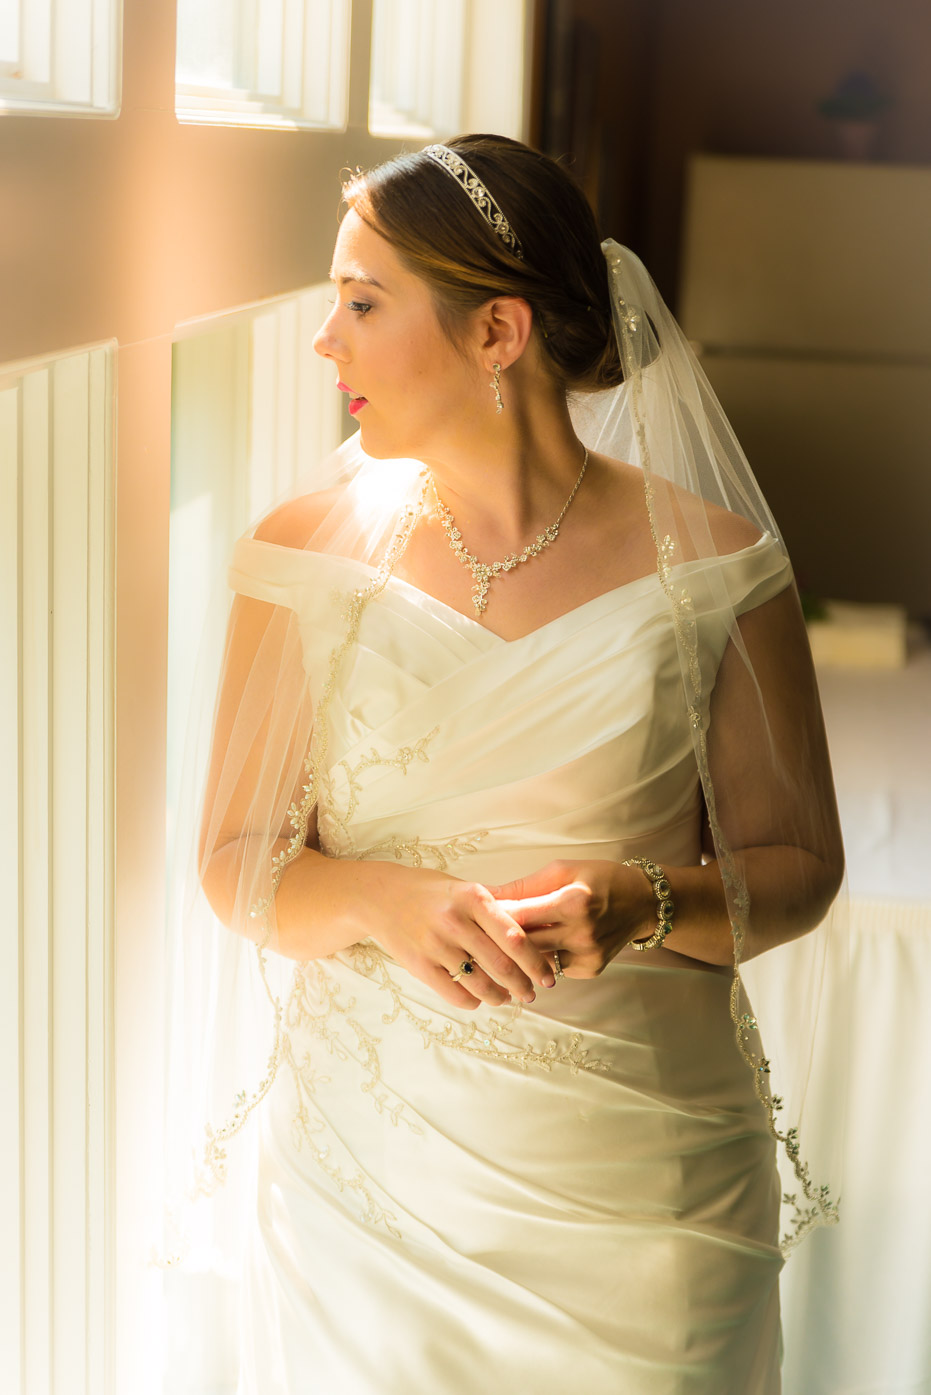 Bride Staring out the Window in Dress and Veil